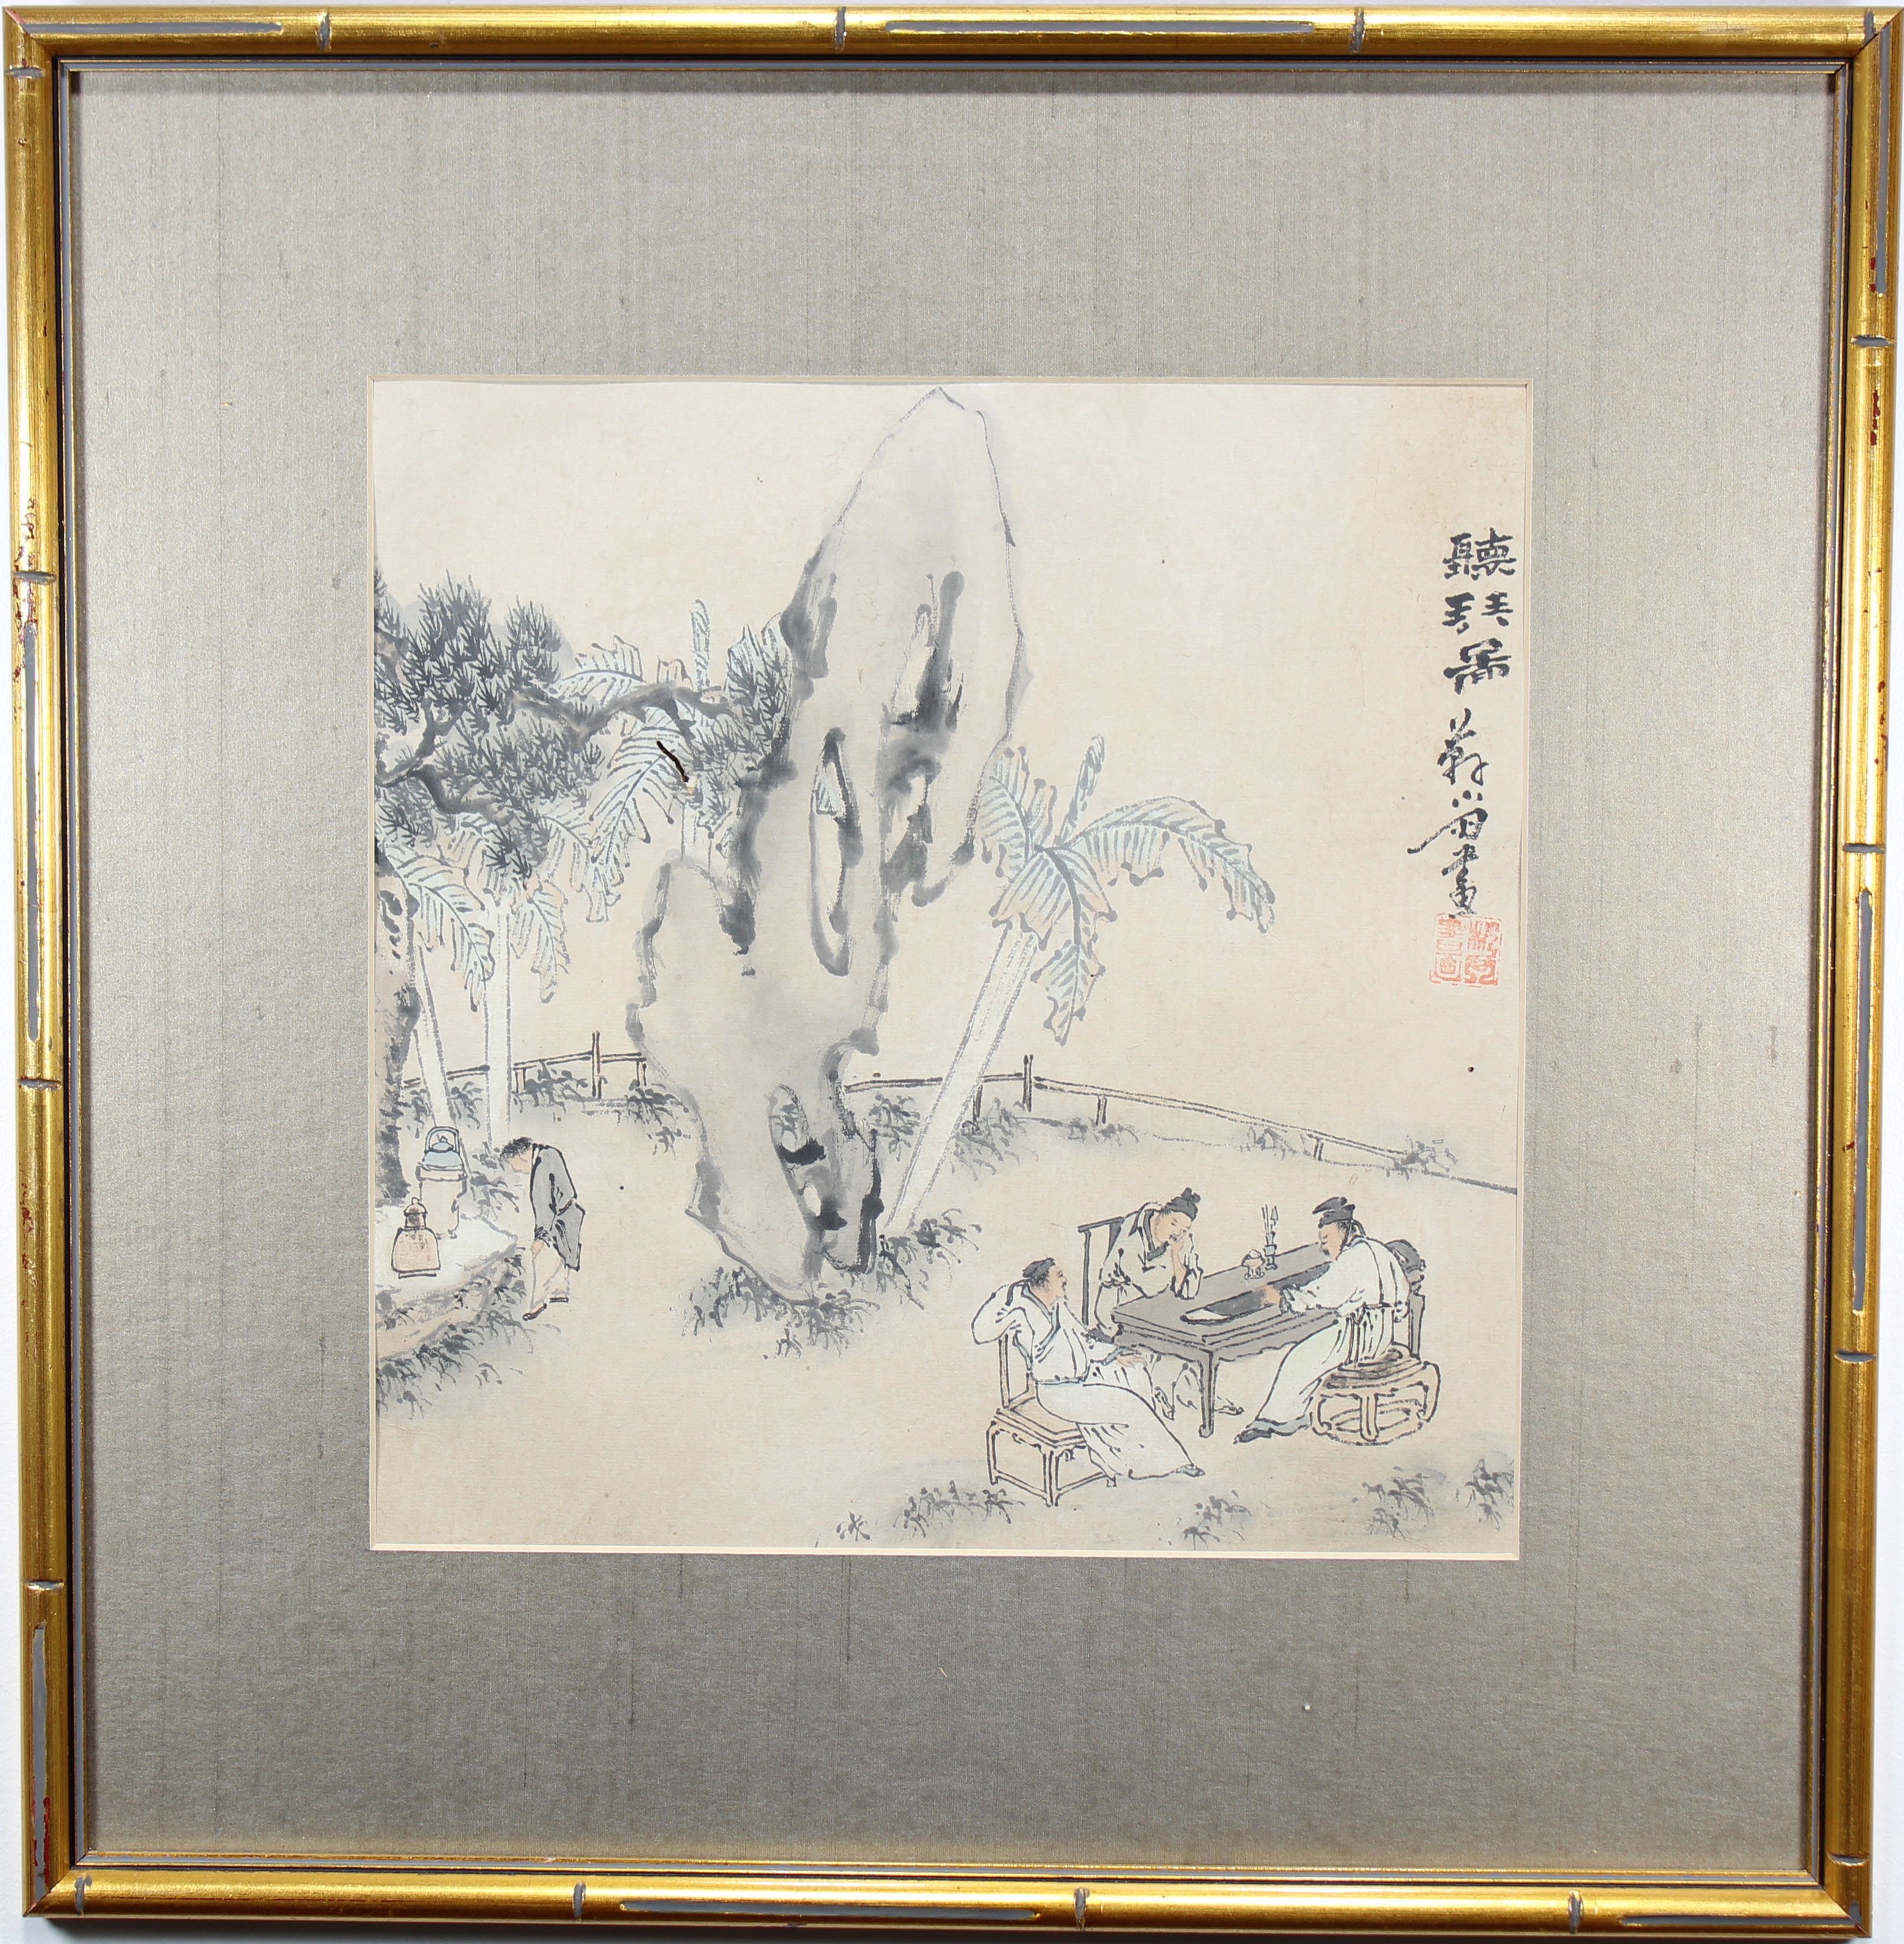 Lot 38a - (4) Liupeng Su (c 1790 - 1862) Watercolor/Ink